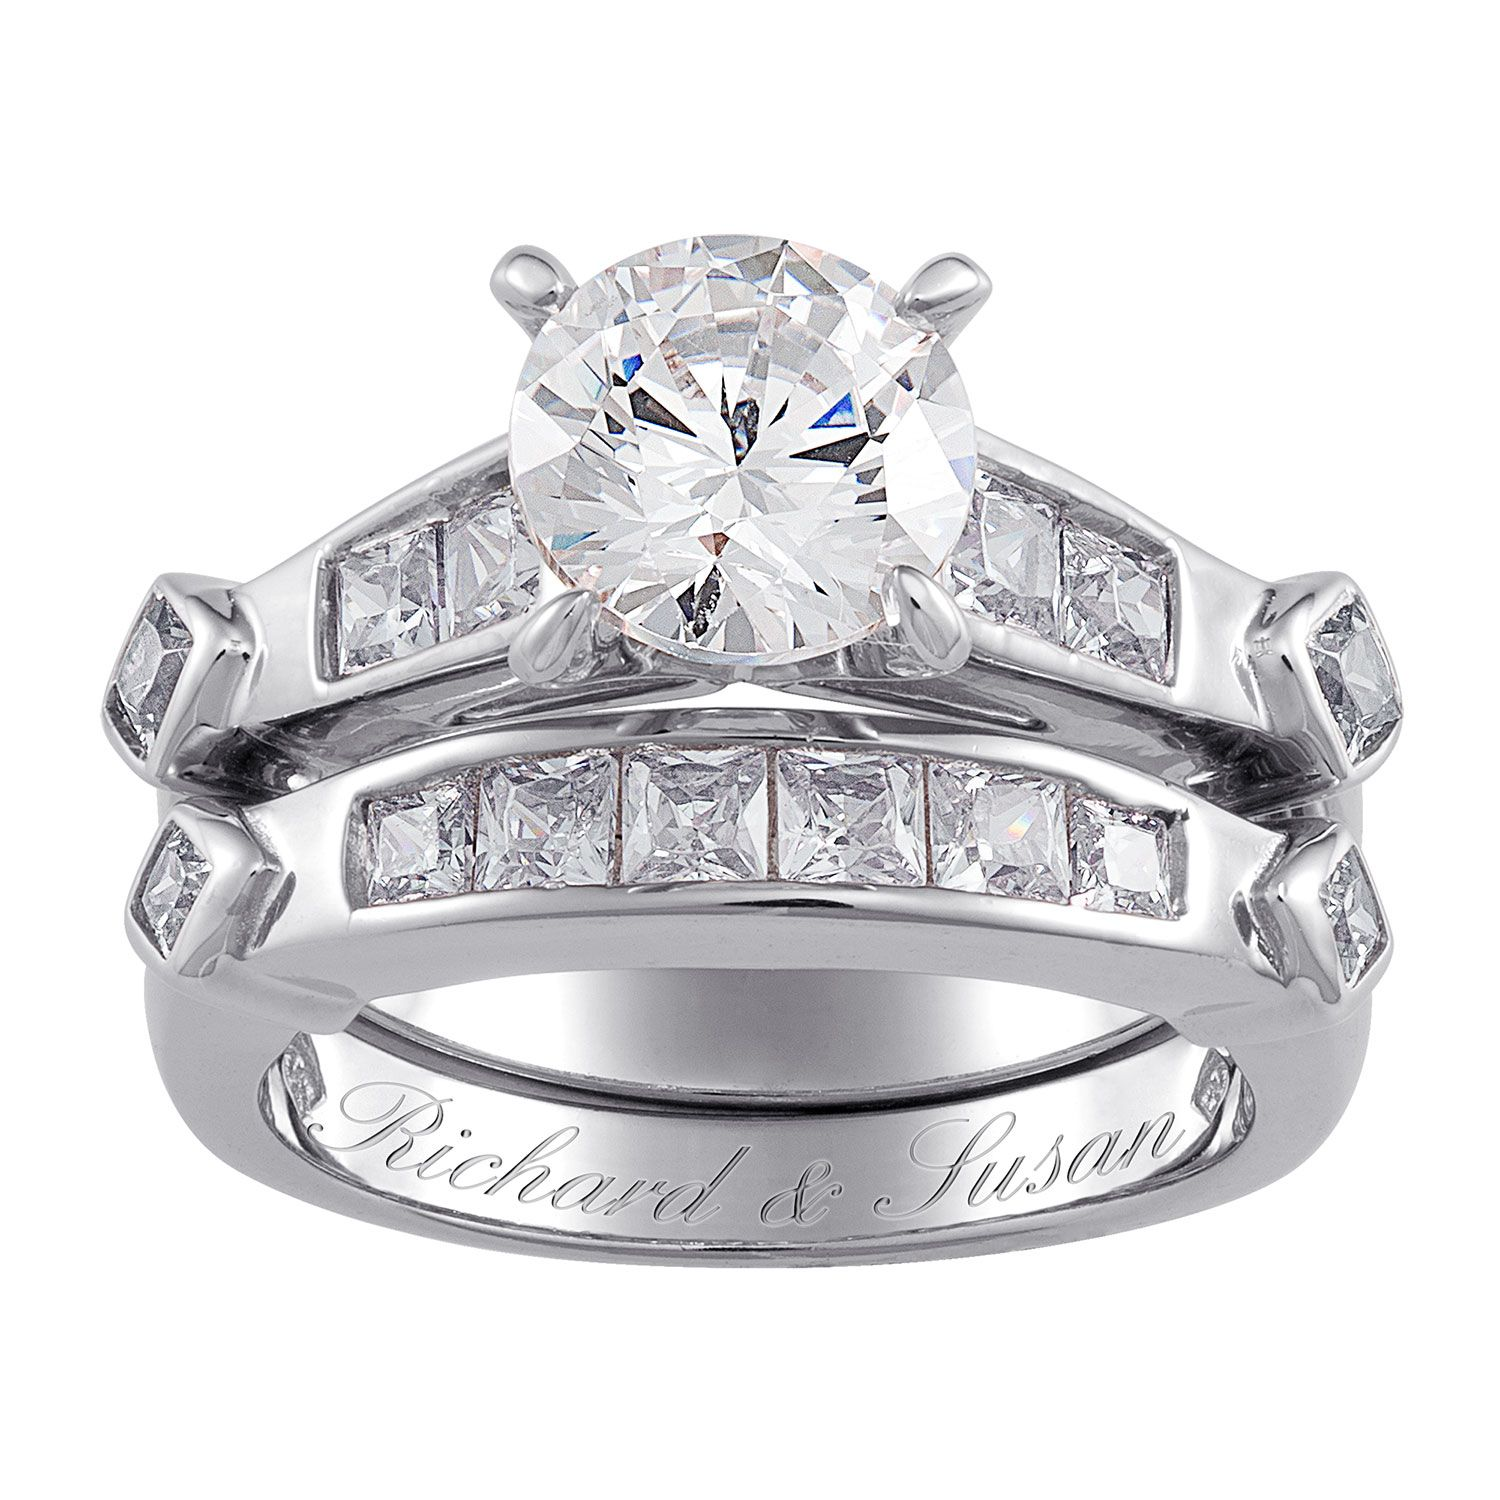 Personalize this brilliant Sterling Silver 2Piece wedding